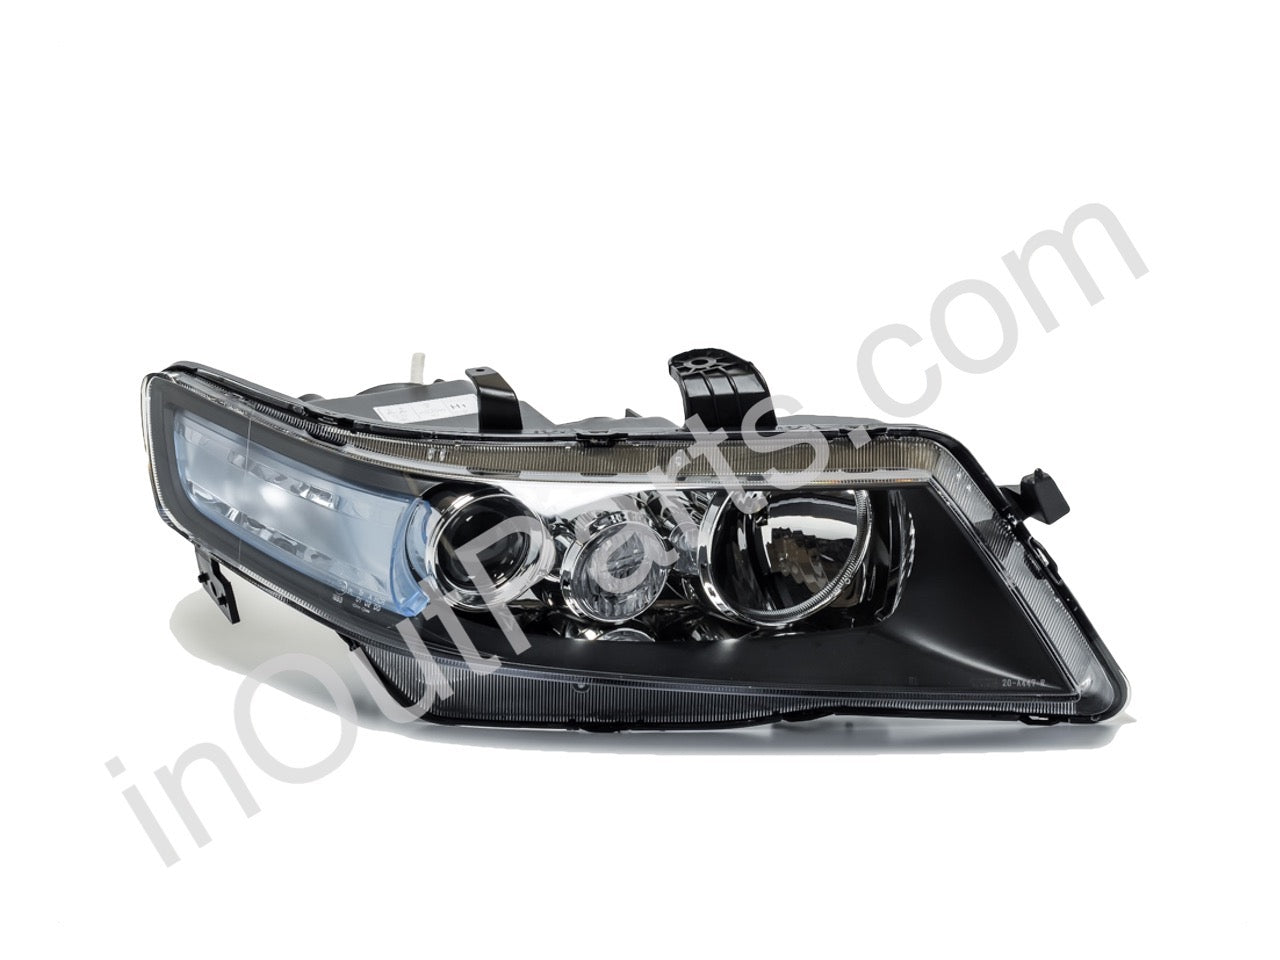 Headlight Right For HONDA ACCORD 2005 2006 2007 2008 Headlamp Passenger  Side   For Electric Leveling ...